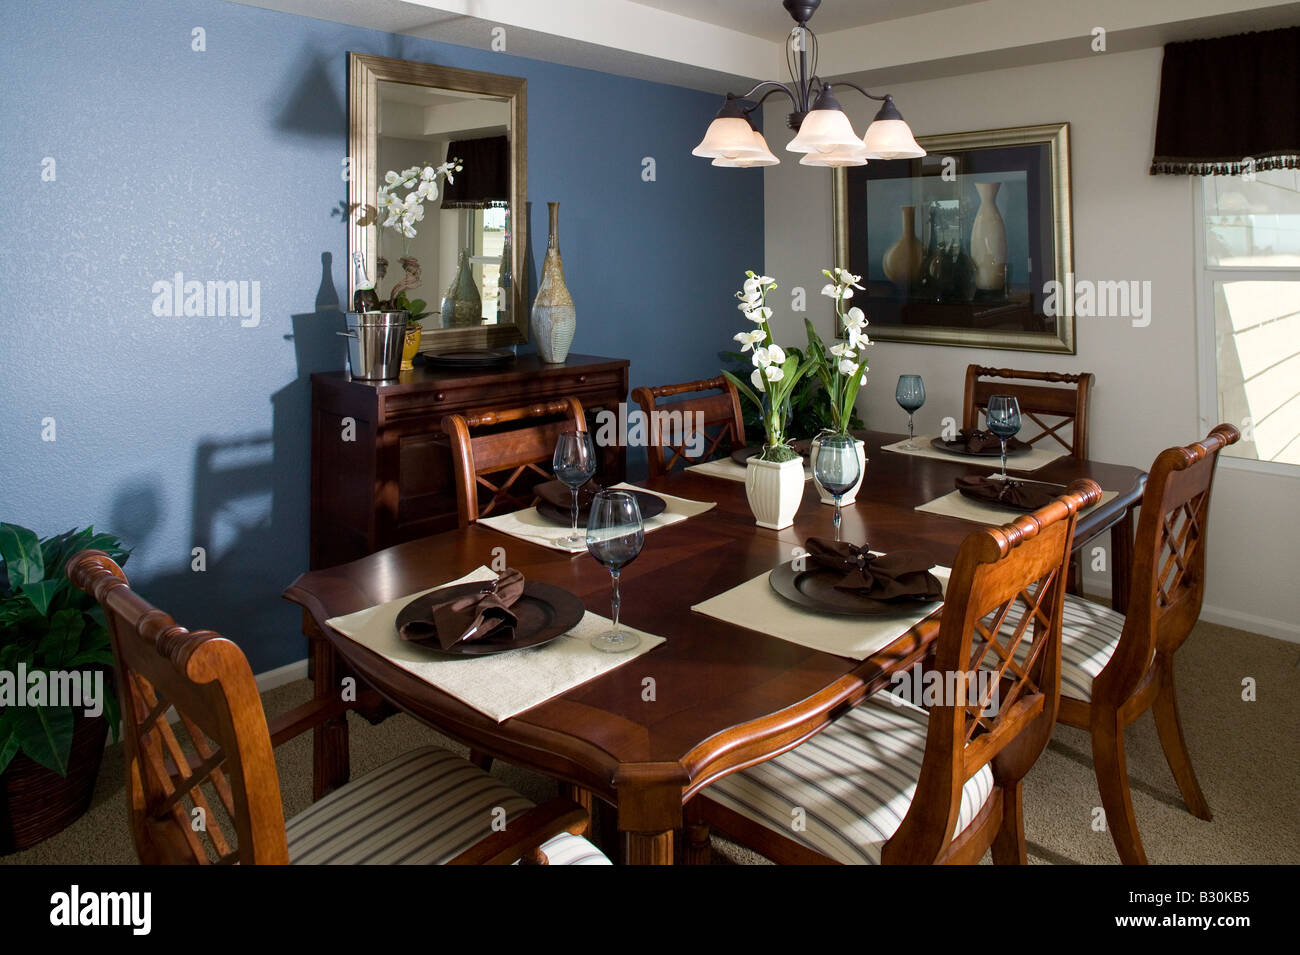 Middle Class Single Family Home Interior Dining Room Table And Chairs  Nobody, Denver, Colorado.